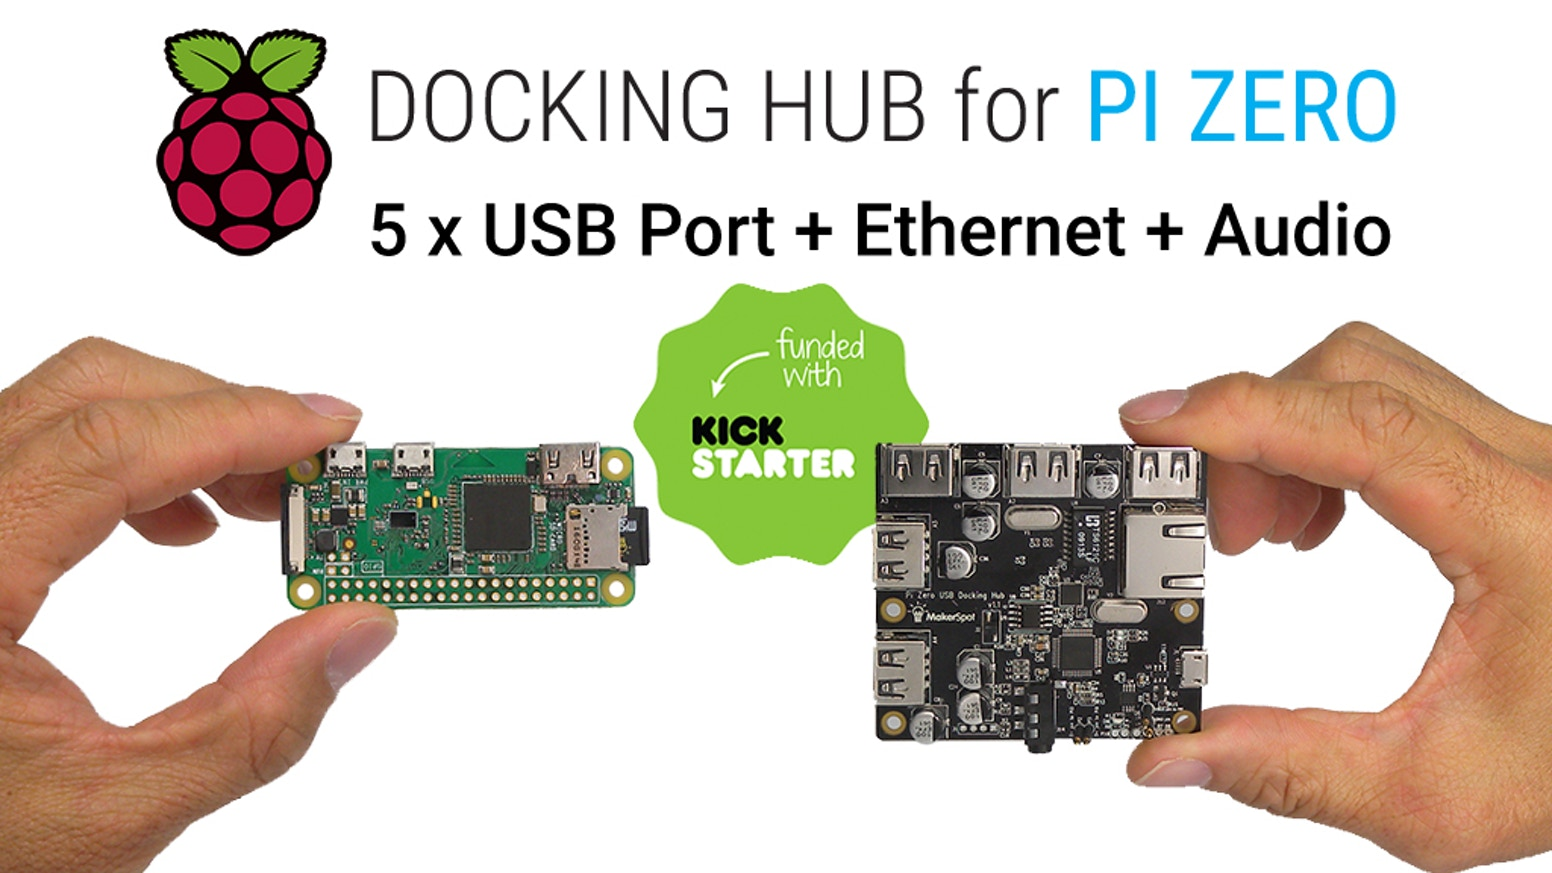 Turn your Pi Zero to an ultimate Docking Station with Bi-Directional Audio and Ethernet Connectivity.